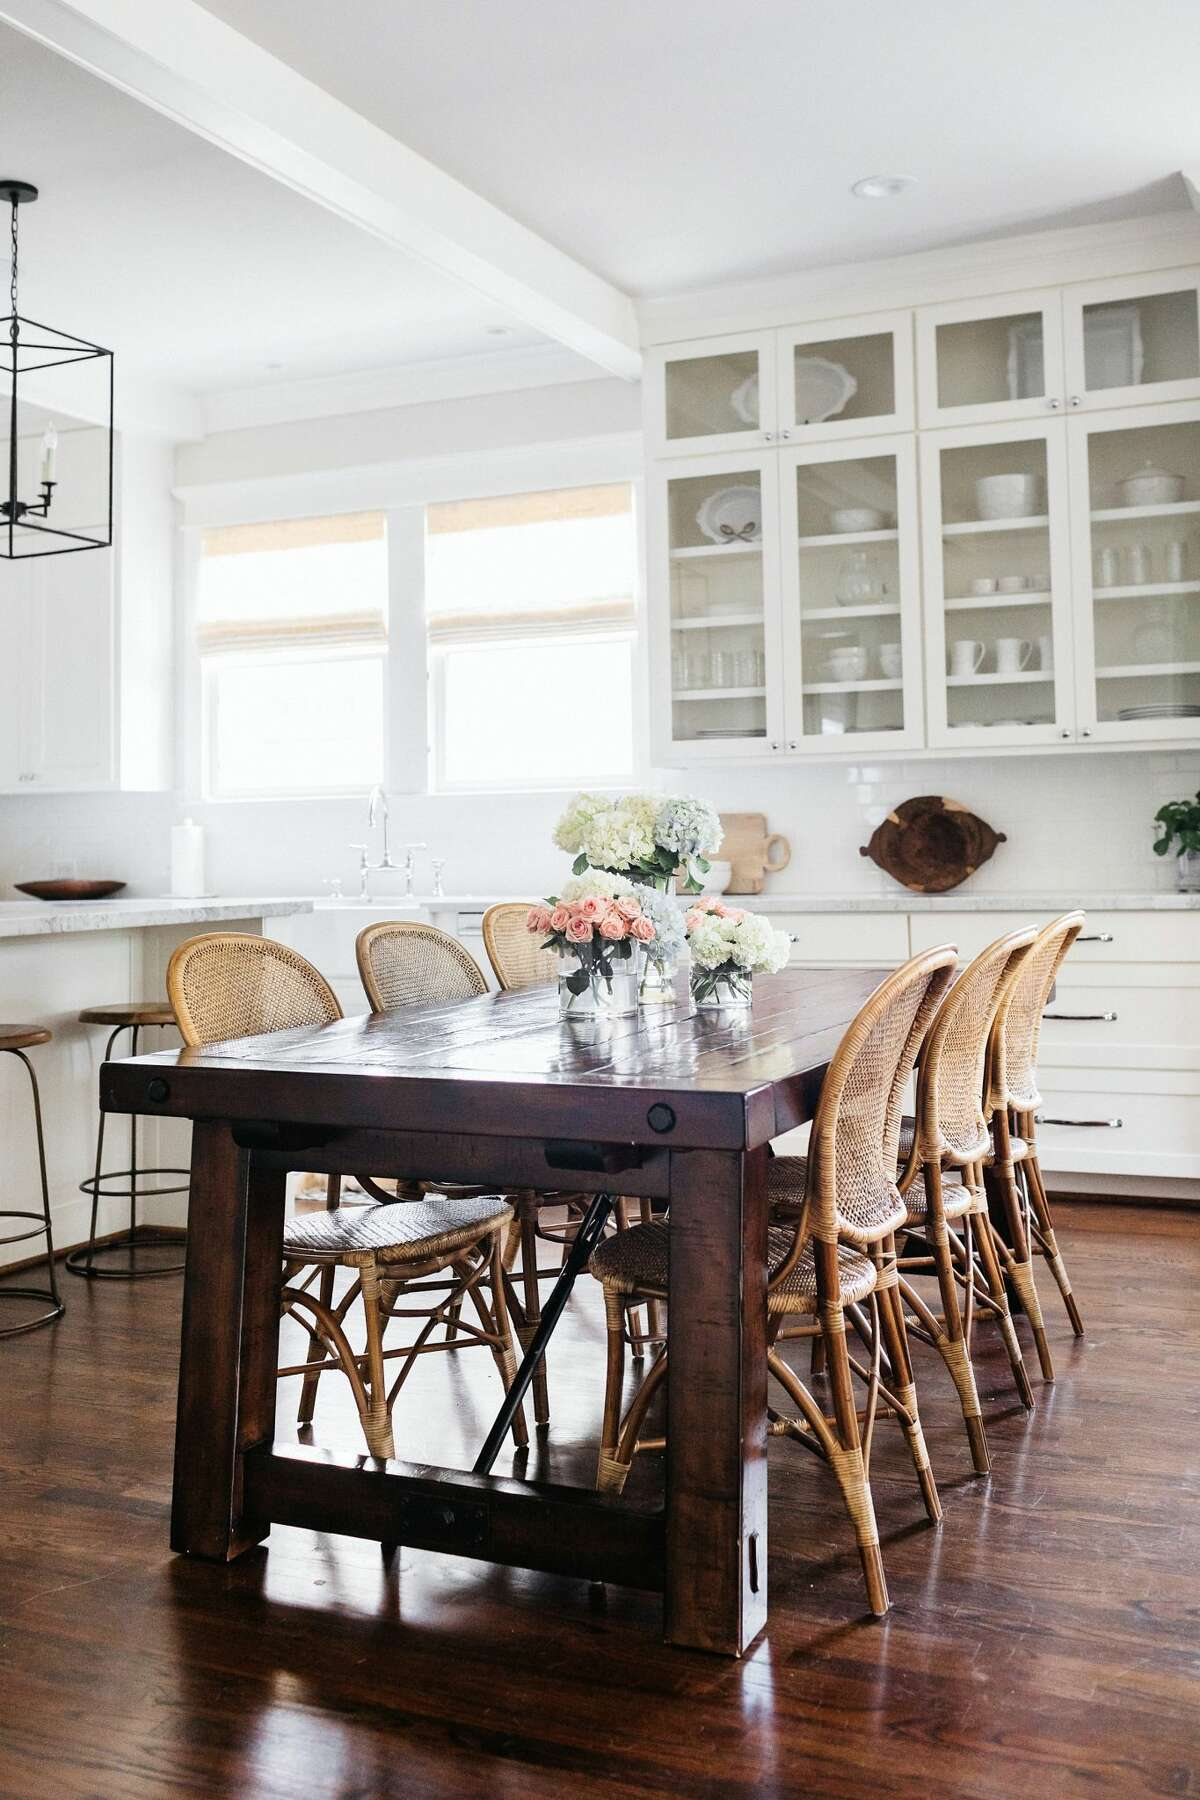 A wood table and rattan chairs add texture to the all-white kitchen.